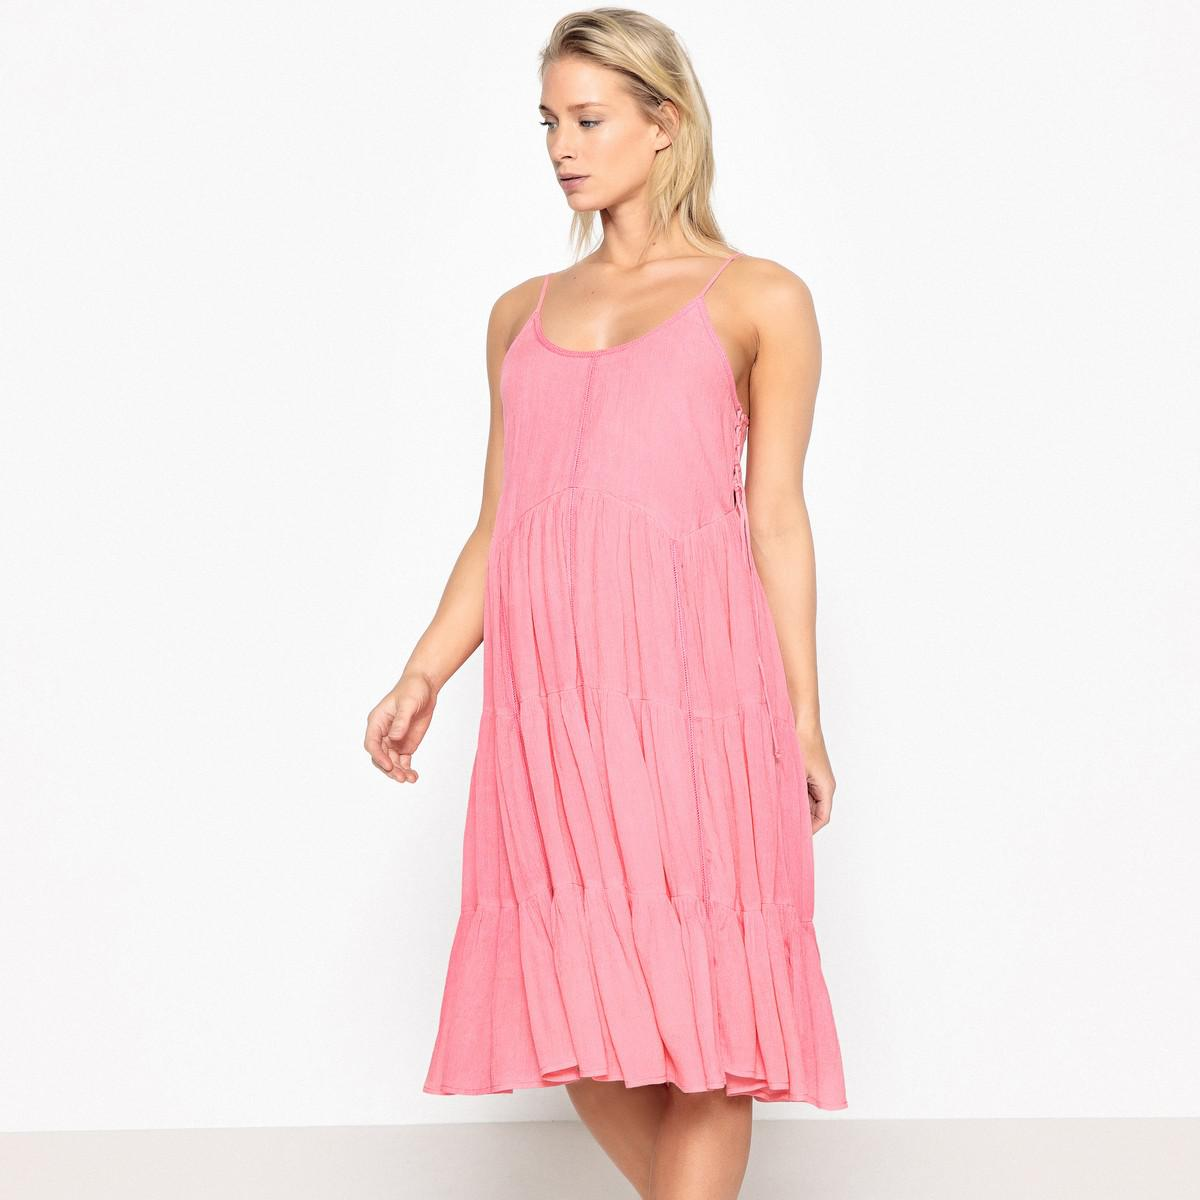 Lyst - La Redoute Maternity Dress With Shoestring Straps in Pink